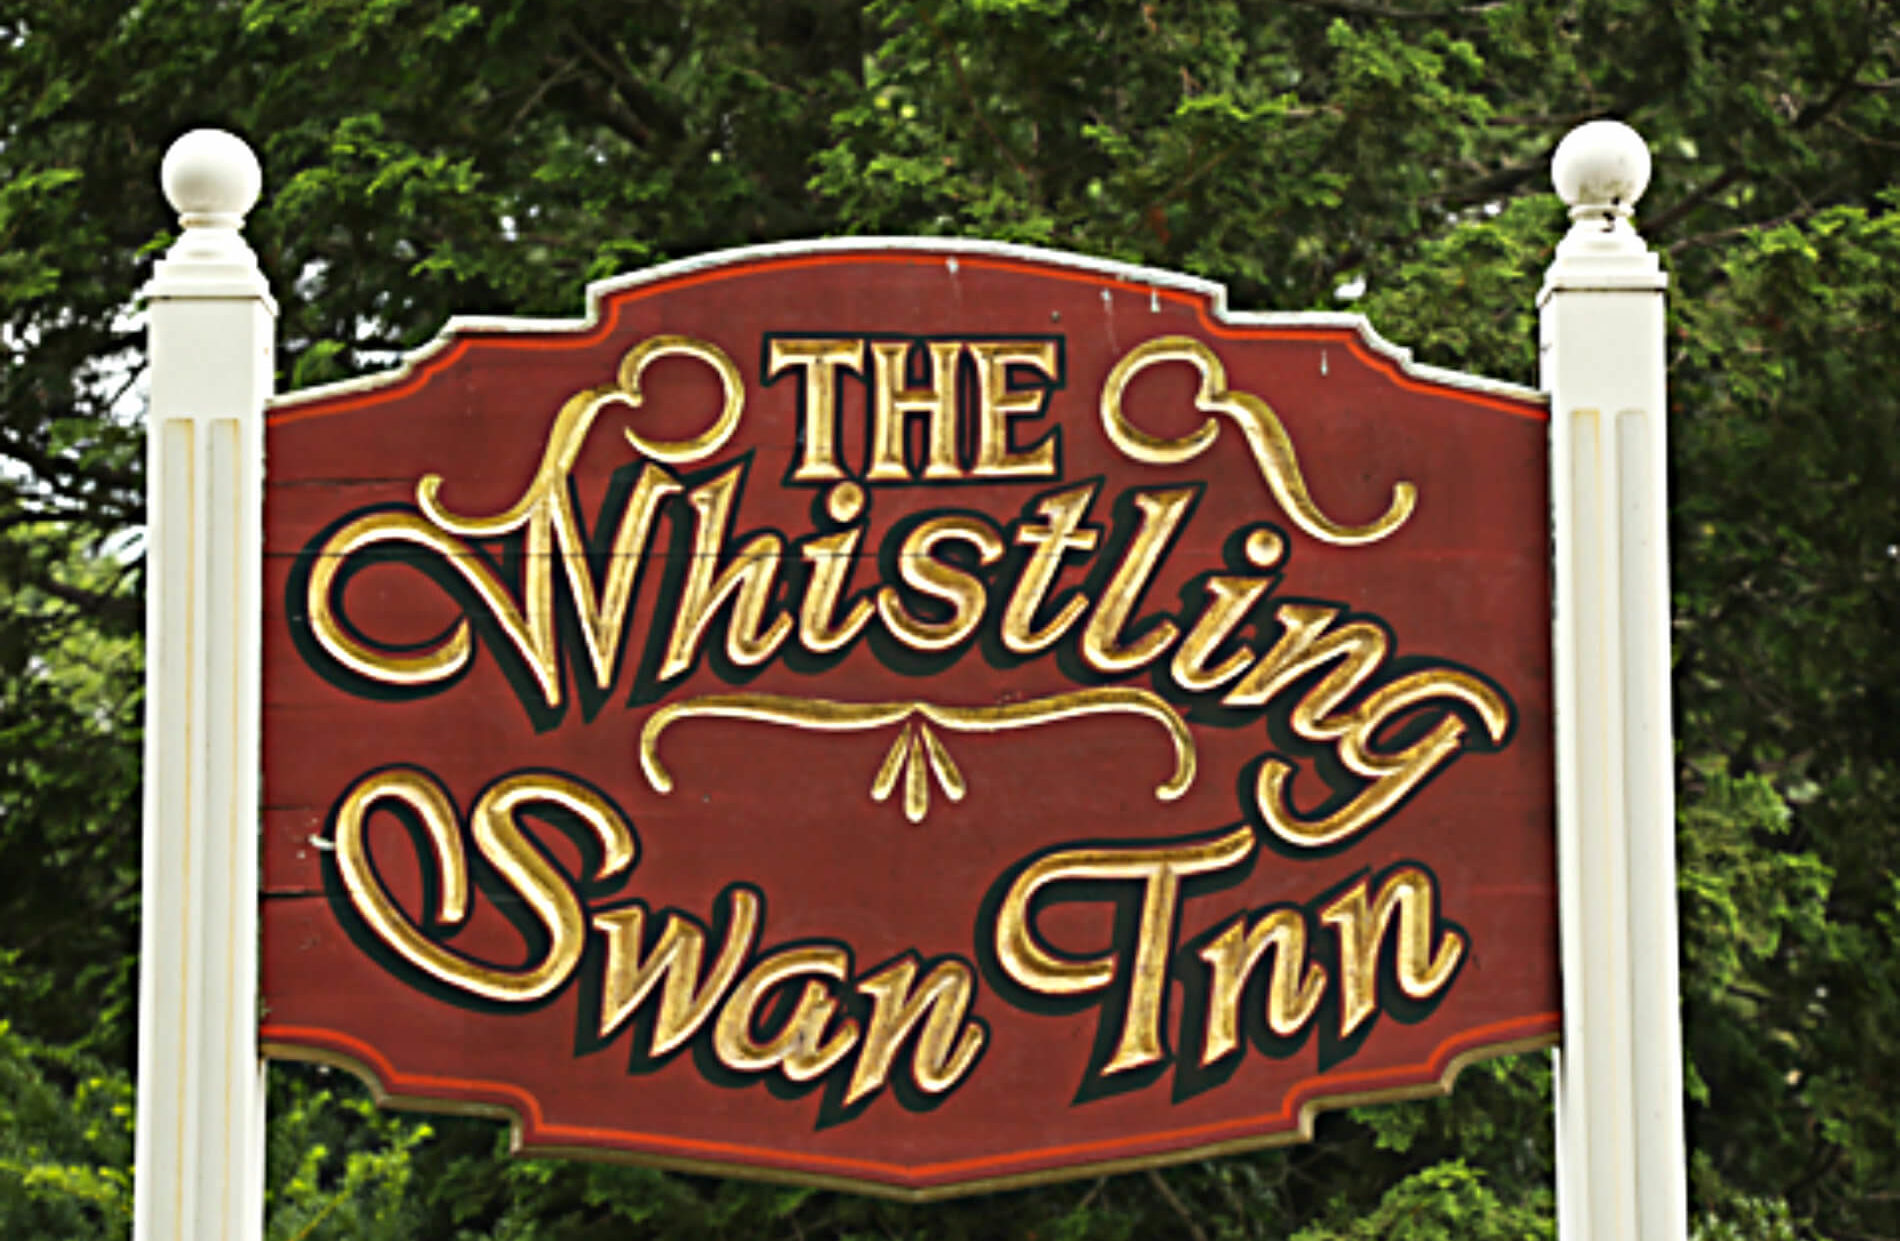 Large Exterior red sign with gold words: The Whistling Swan Inn